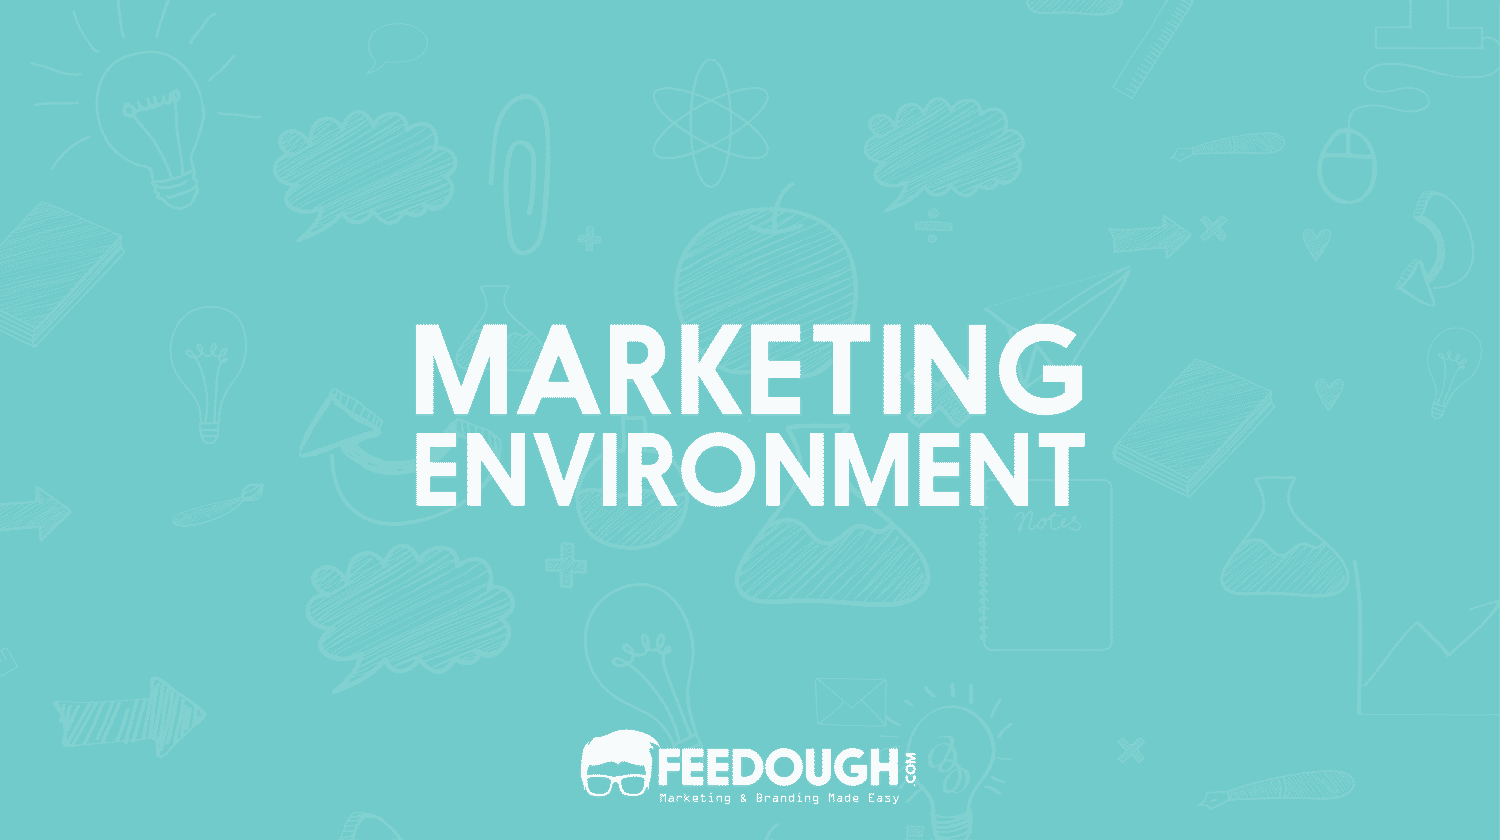 components of marketing environment